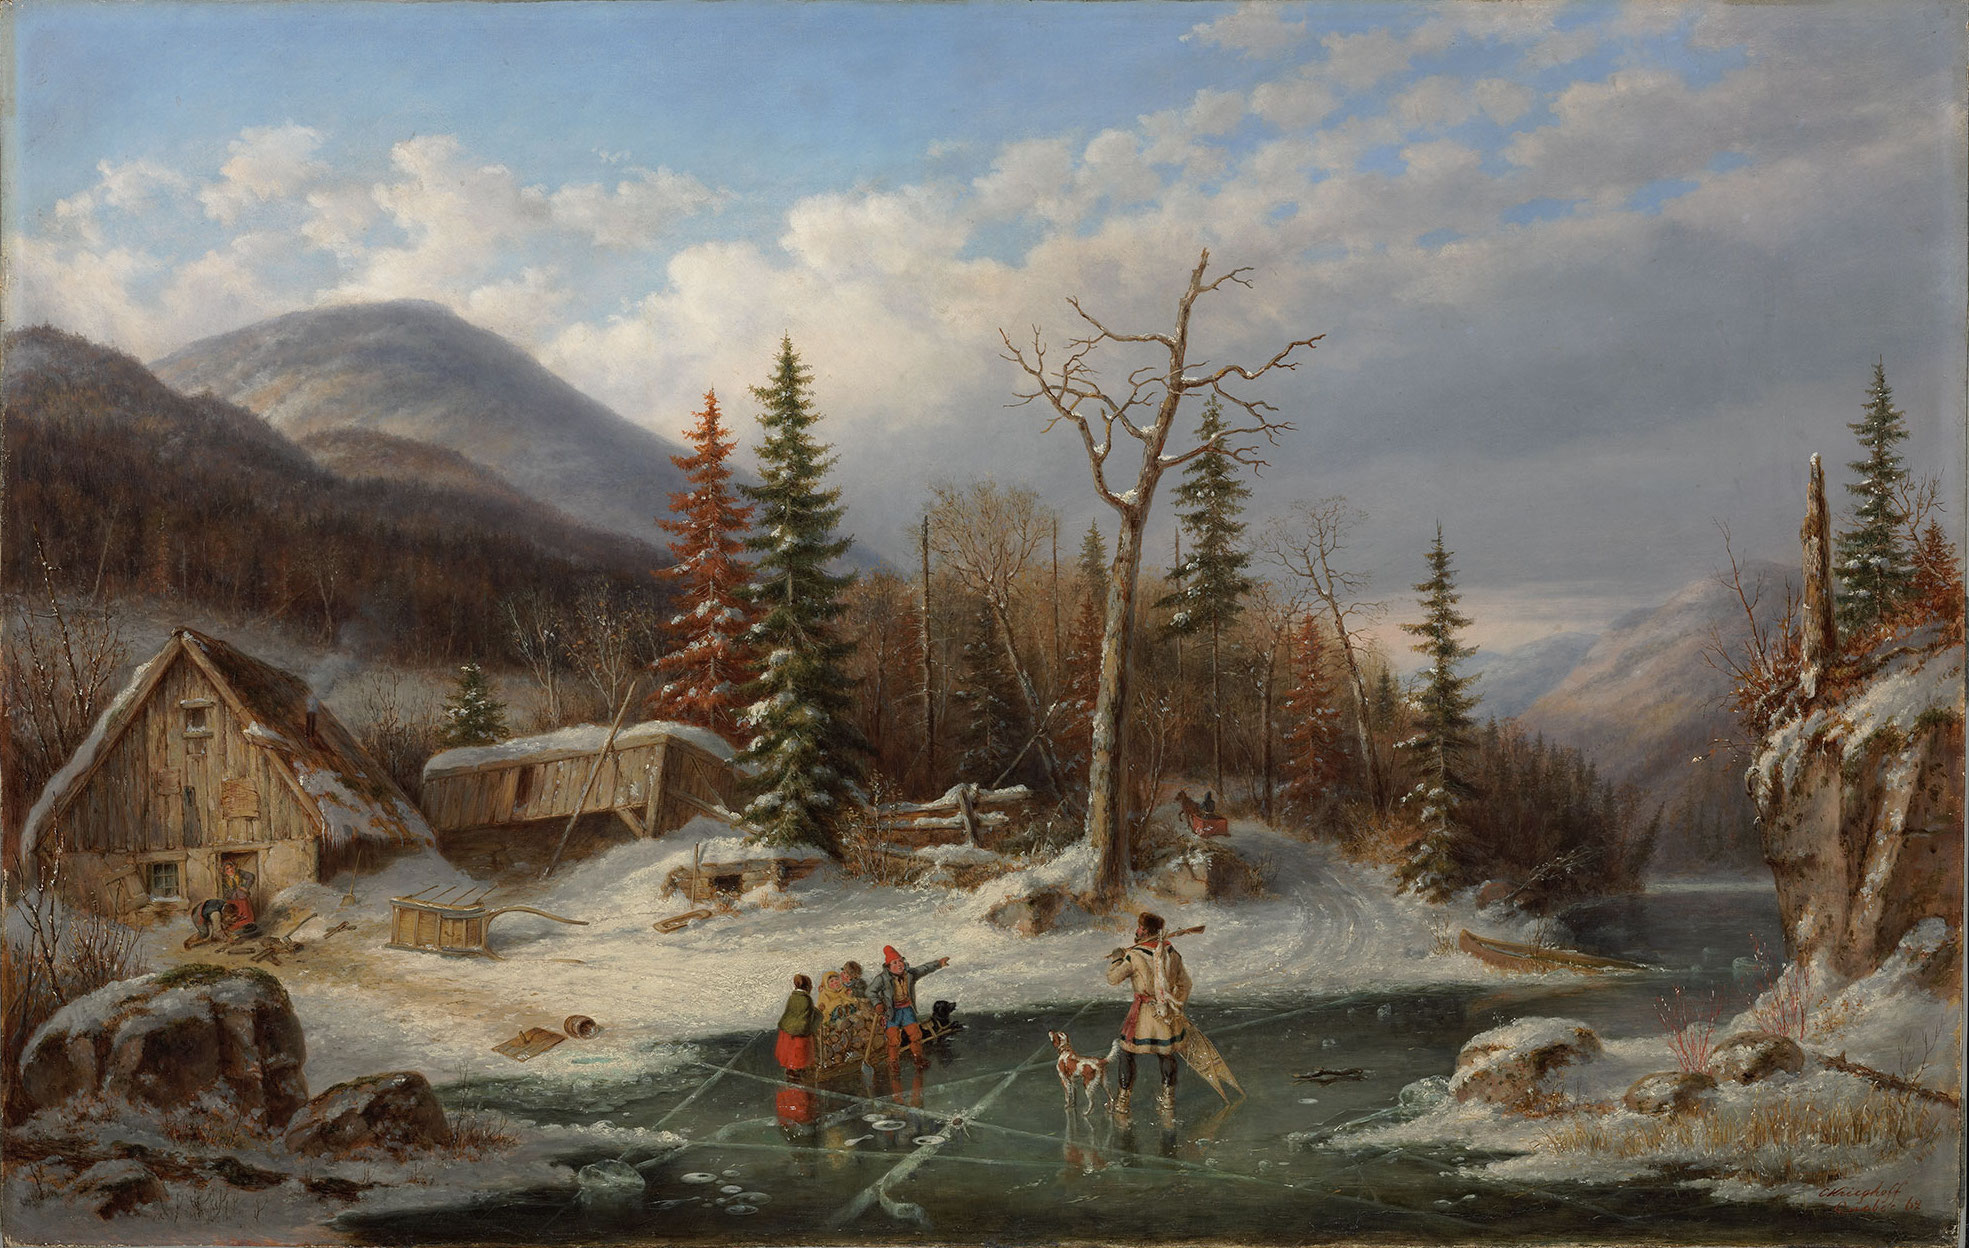 file 39 winter landscape laval 39 oil on canvas painting by. Black Bedroom Furniture Sets. Home Design Ideas